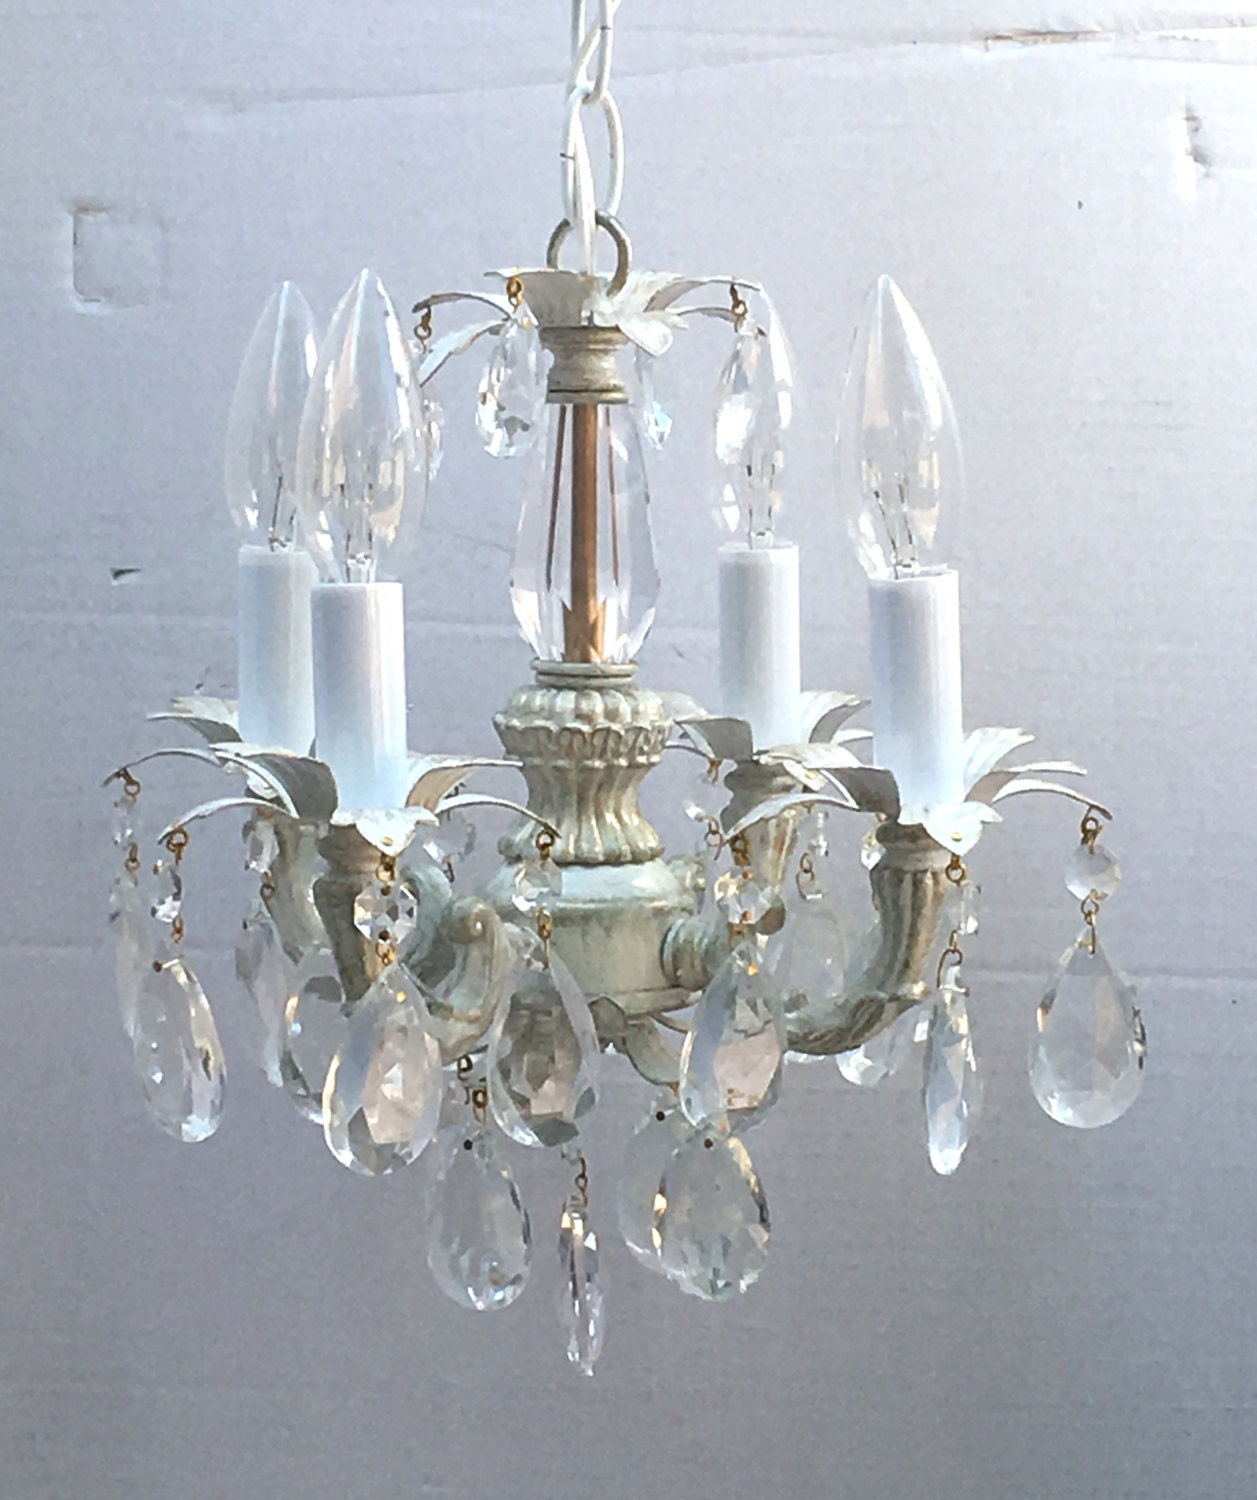 shabby chic cottage style mini mini chandelier for a bedroom room closet or